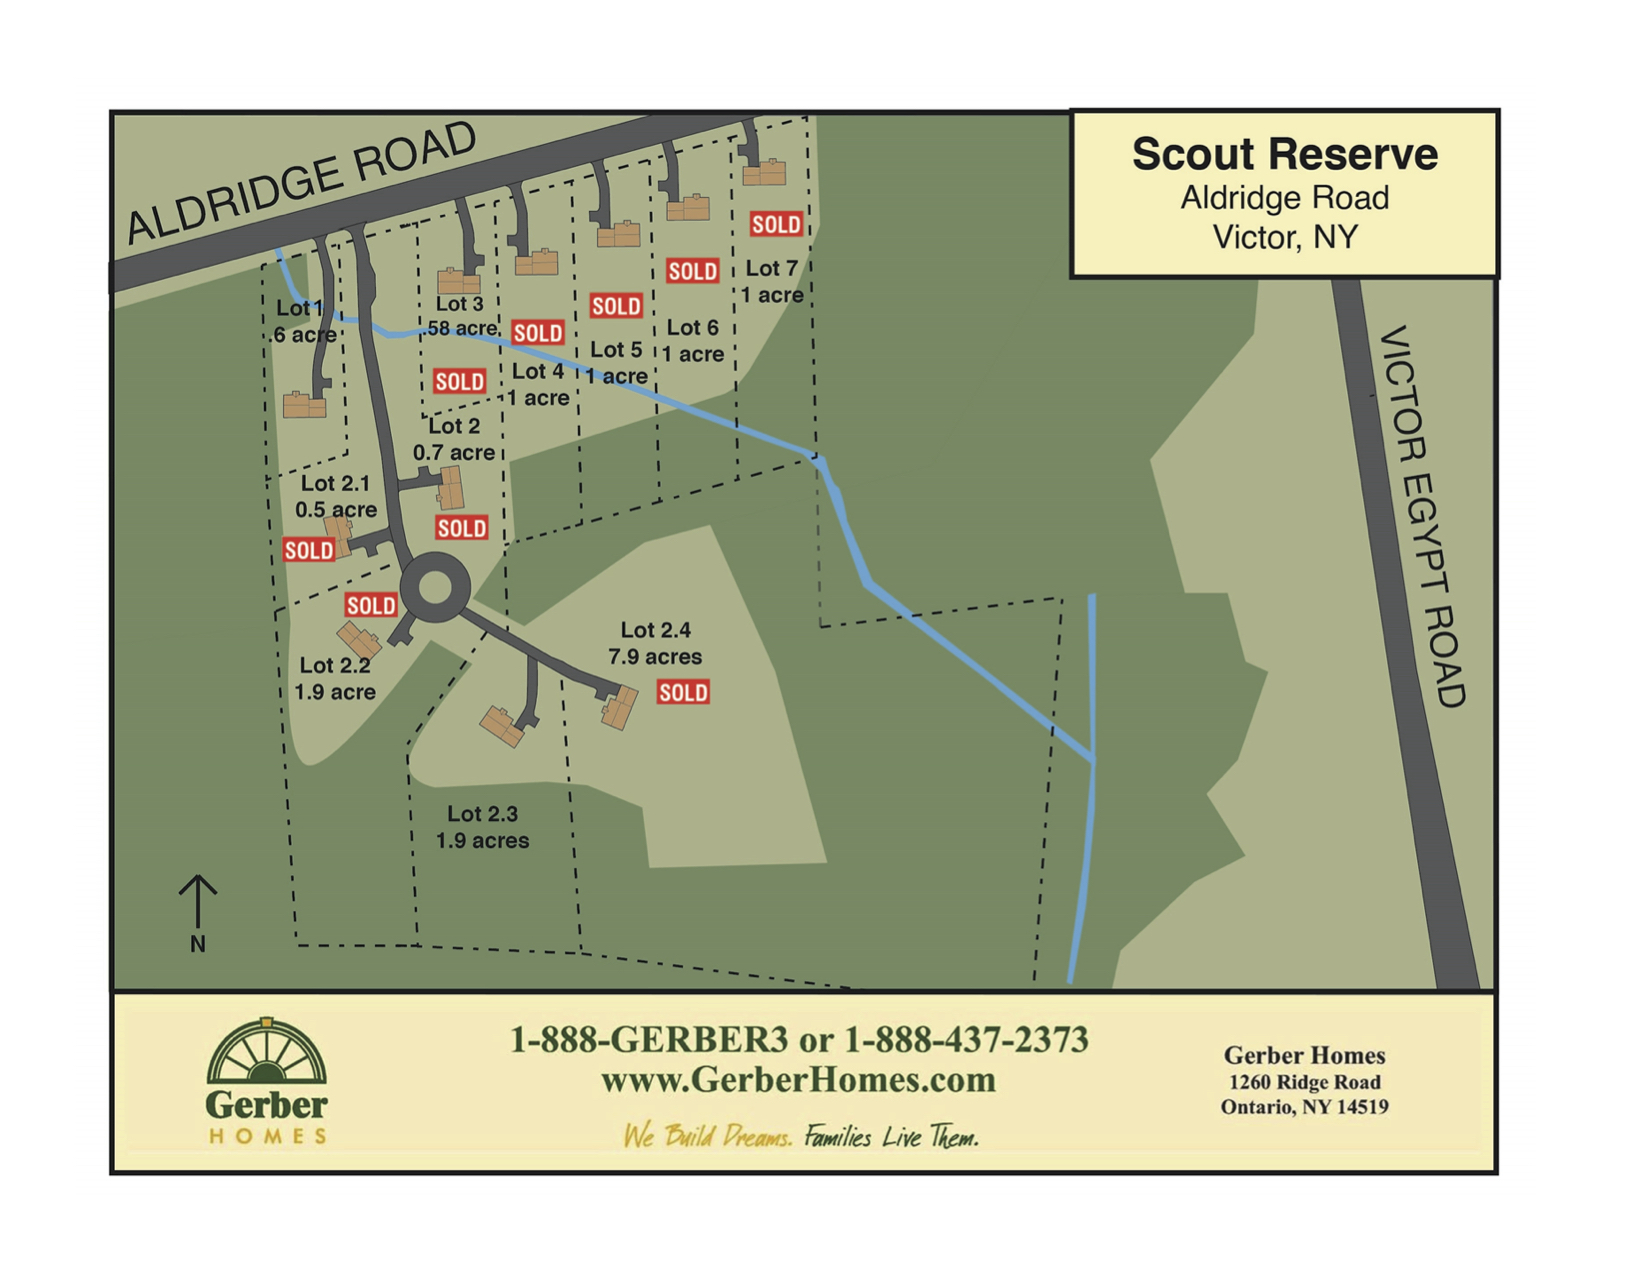 20200814_SCOUTS RESERVE MAP03-21